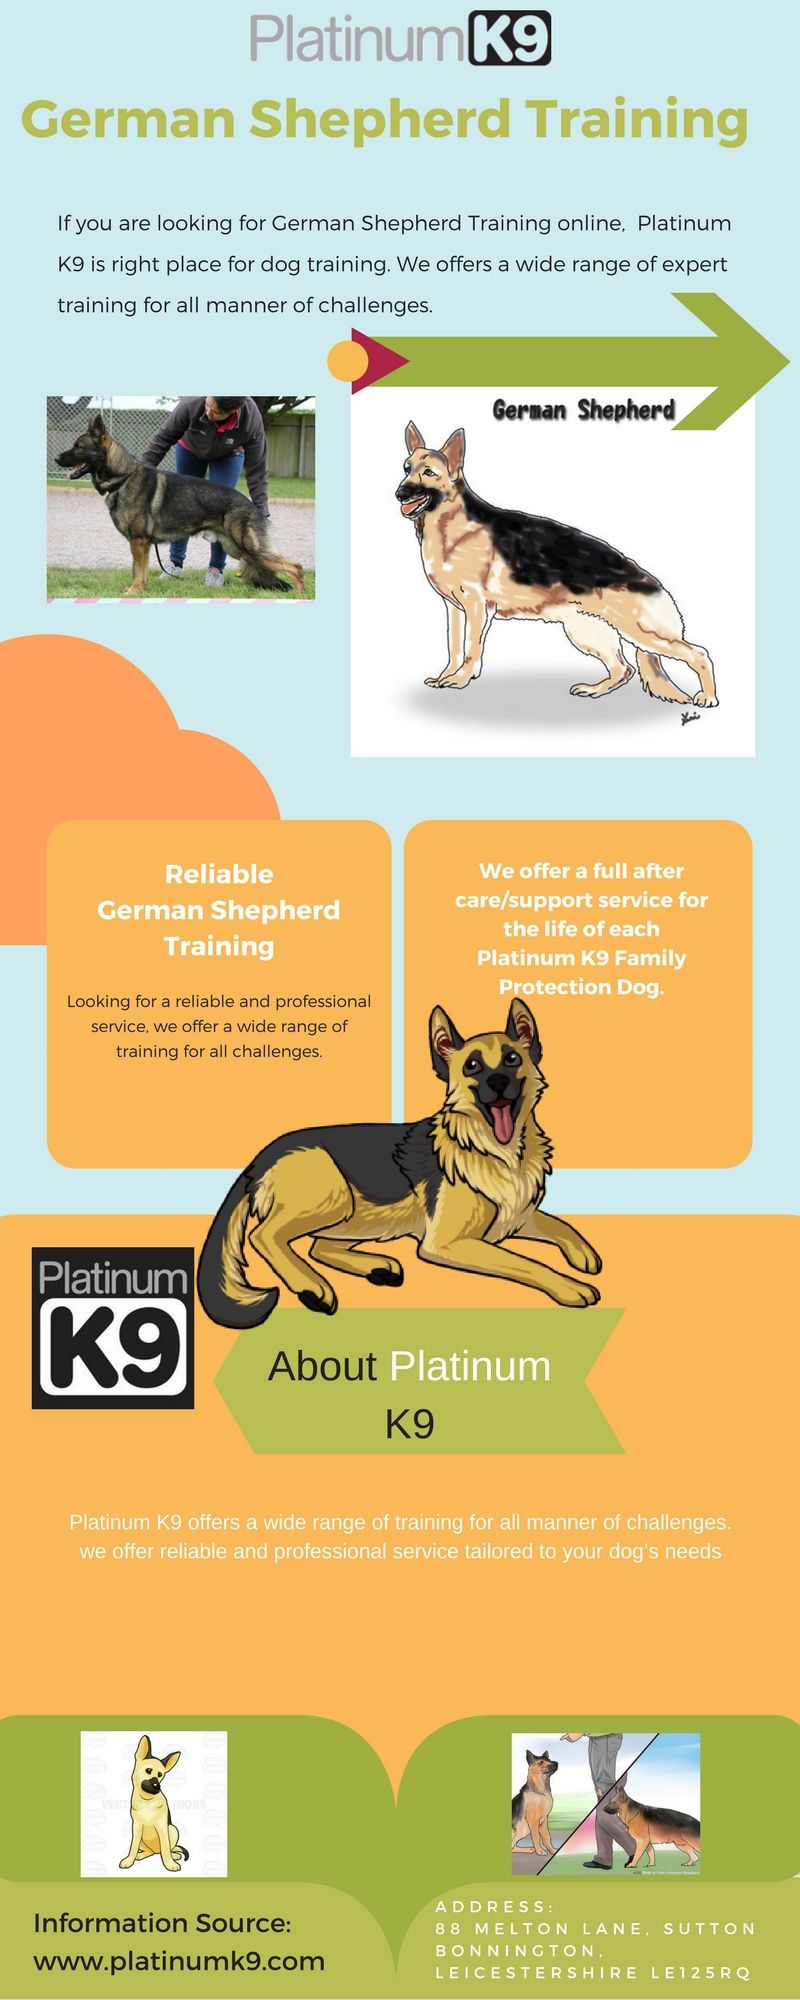 If You Are Looking For Germanshepherdtraining Then Contact